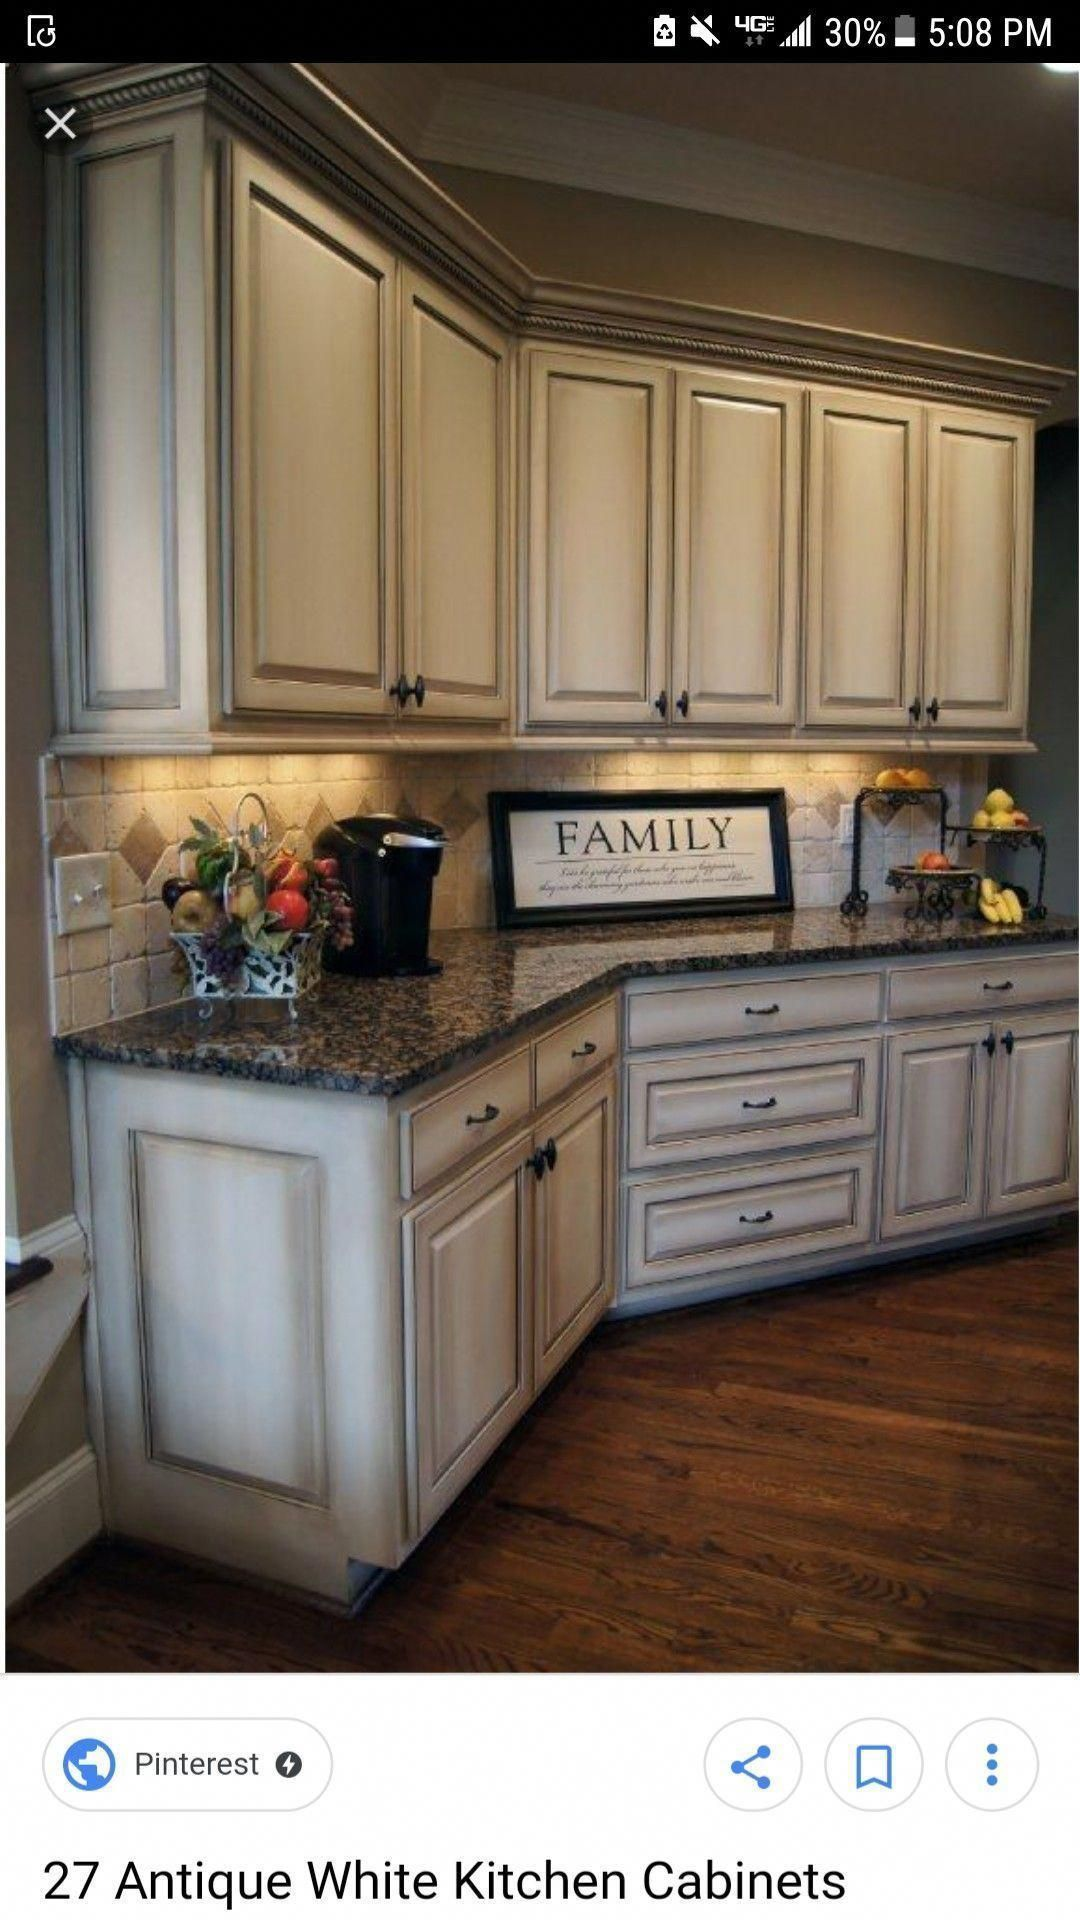 Glazed Kitchen Cabinets Tuscankitchens Glazed Kitchen Cabinets New Kitchen Cabinets Kitchen Cabinet Design